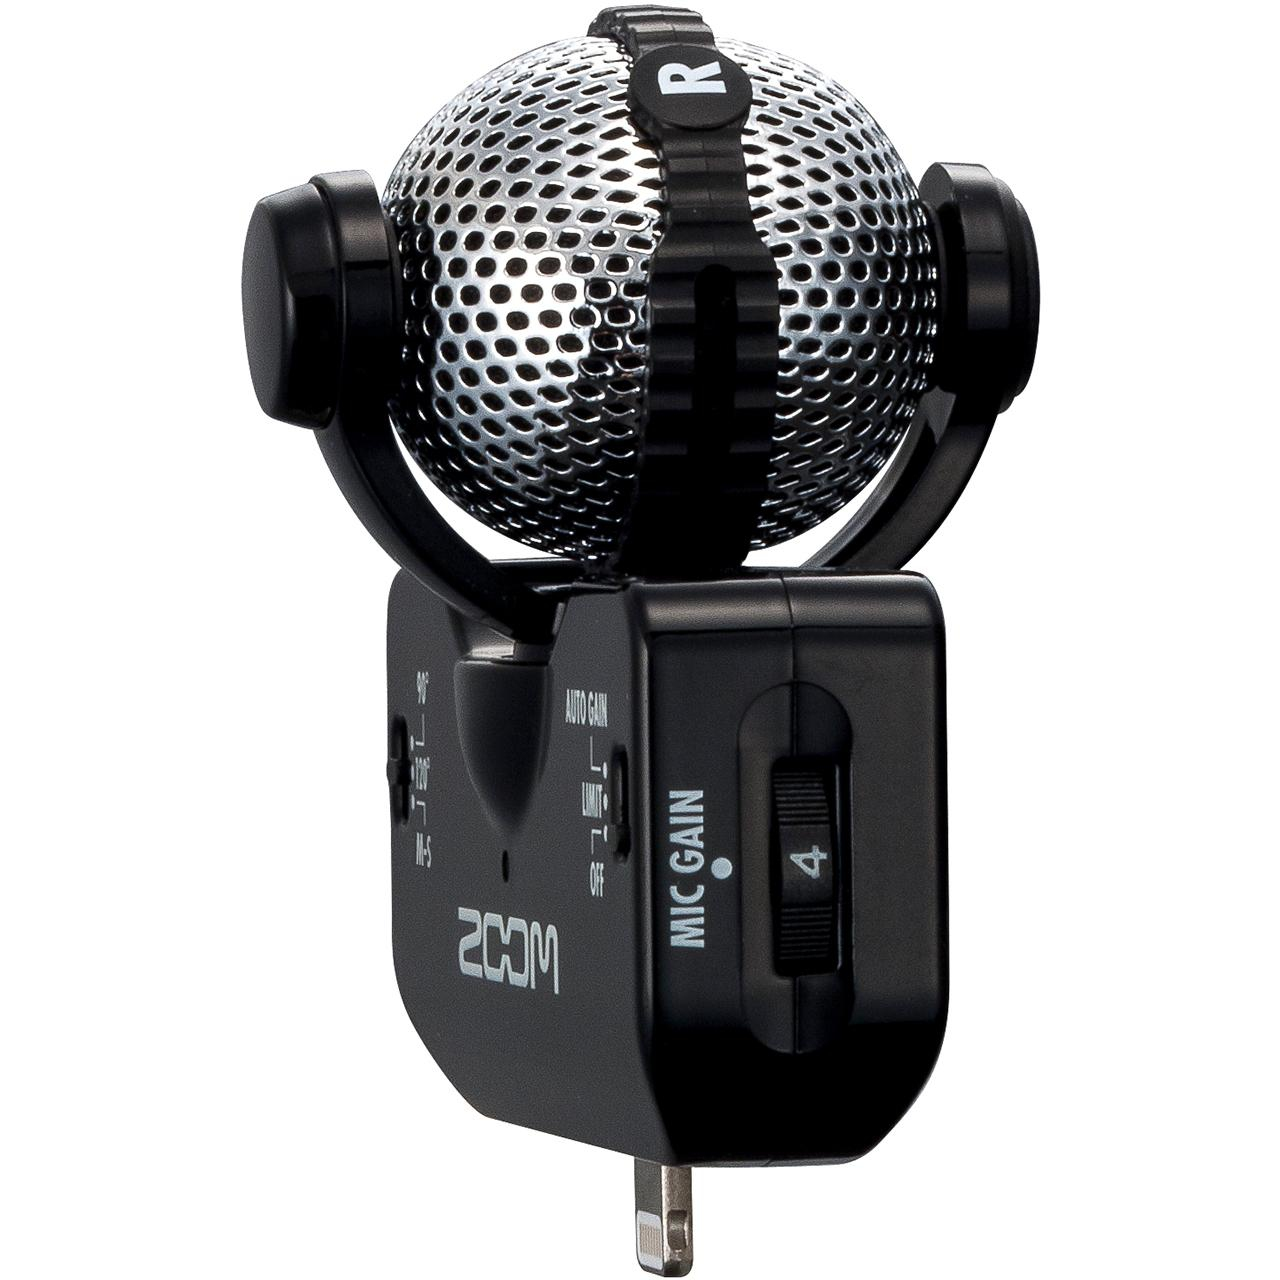 Zoom Iq5 Recorders